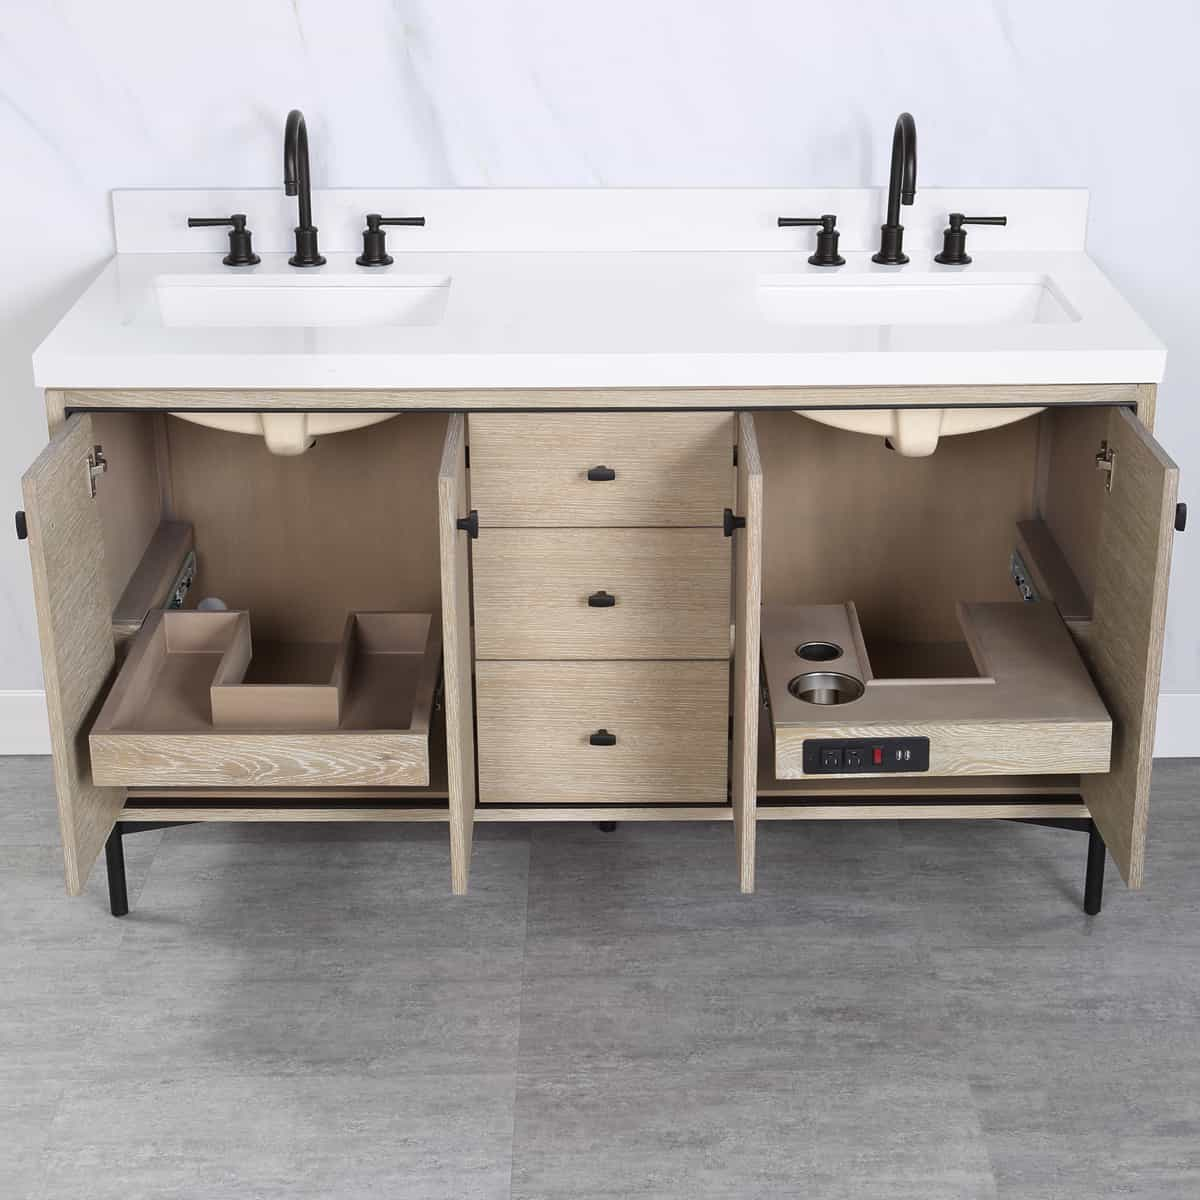 featured image showing the double vanity sink from Fairmont Design's Bravo Collection with the interchangeable cabinets.